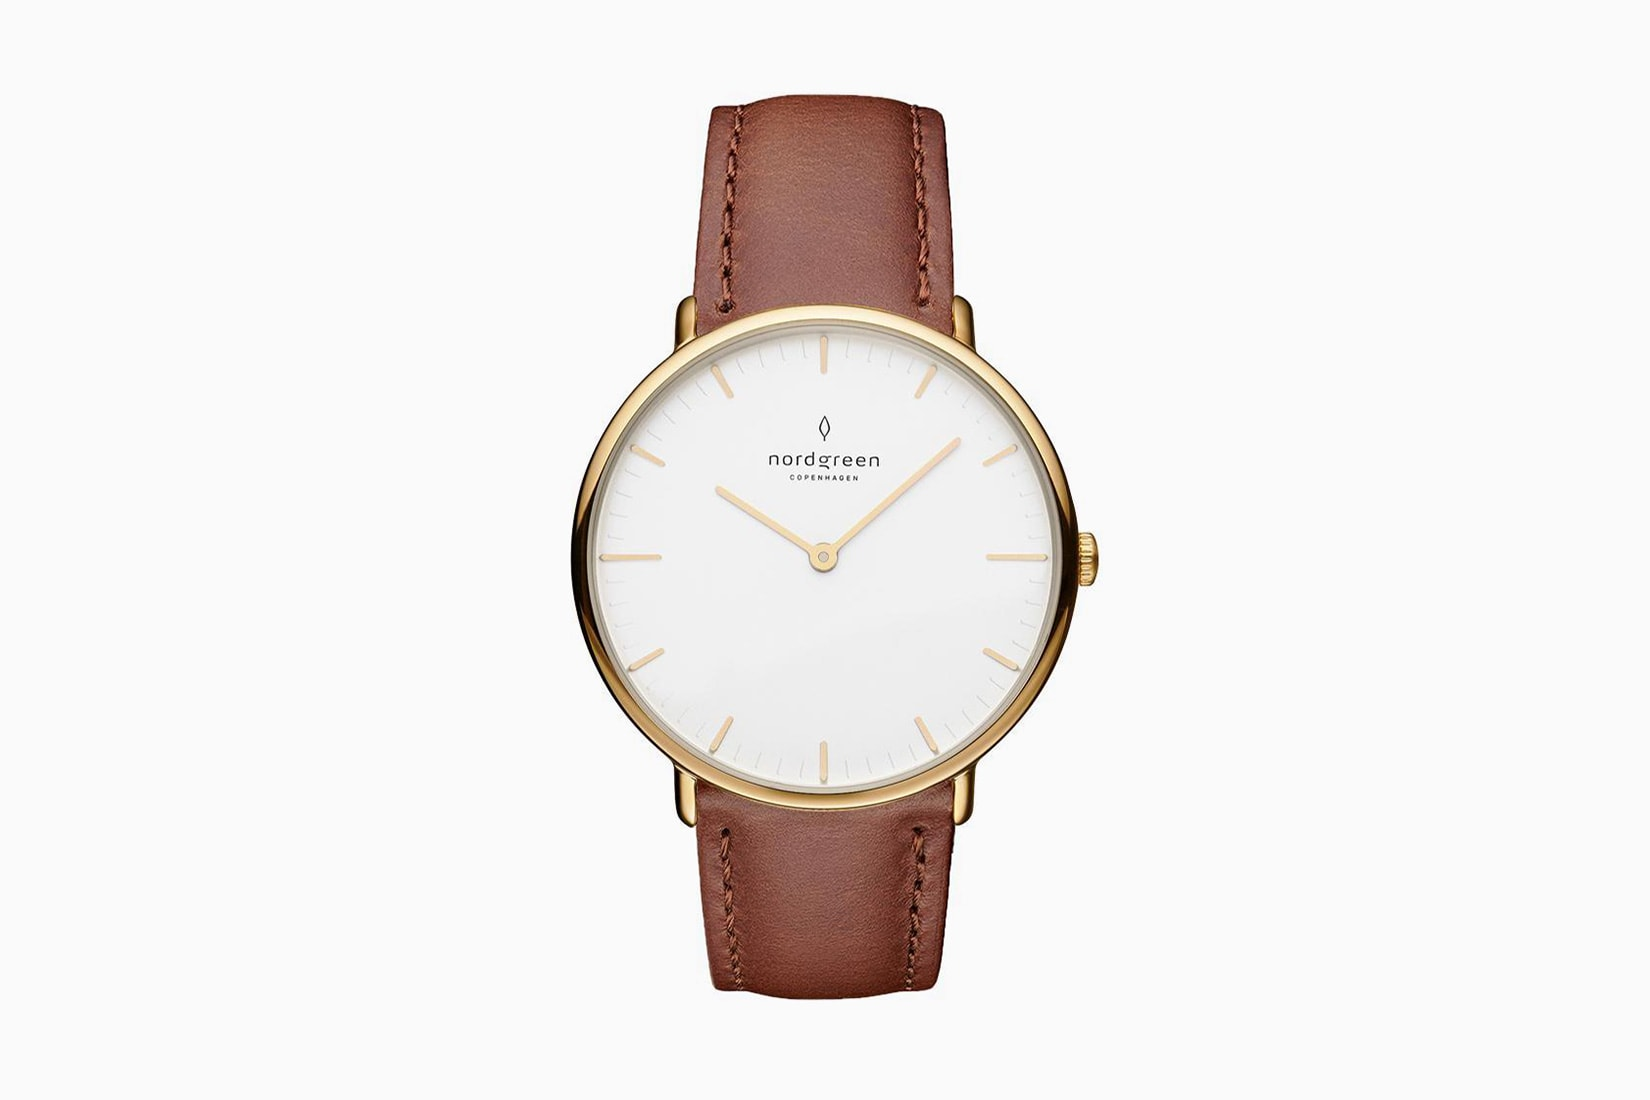 best women watches leather bracelet nordgreen native review - Luxe Digital